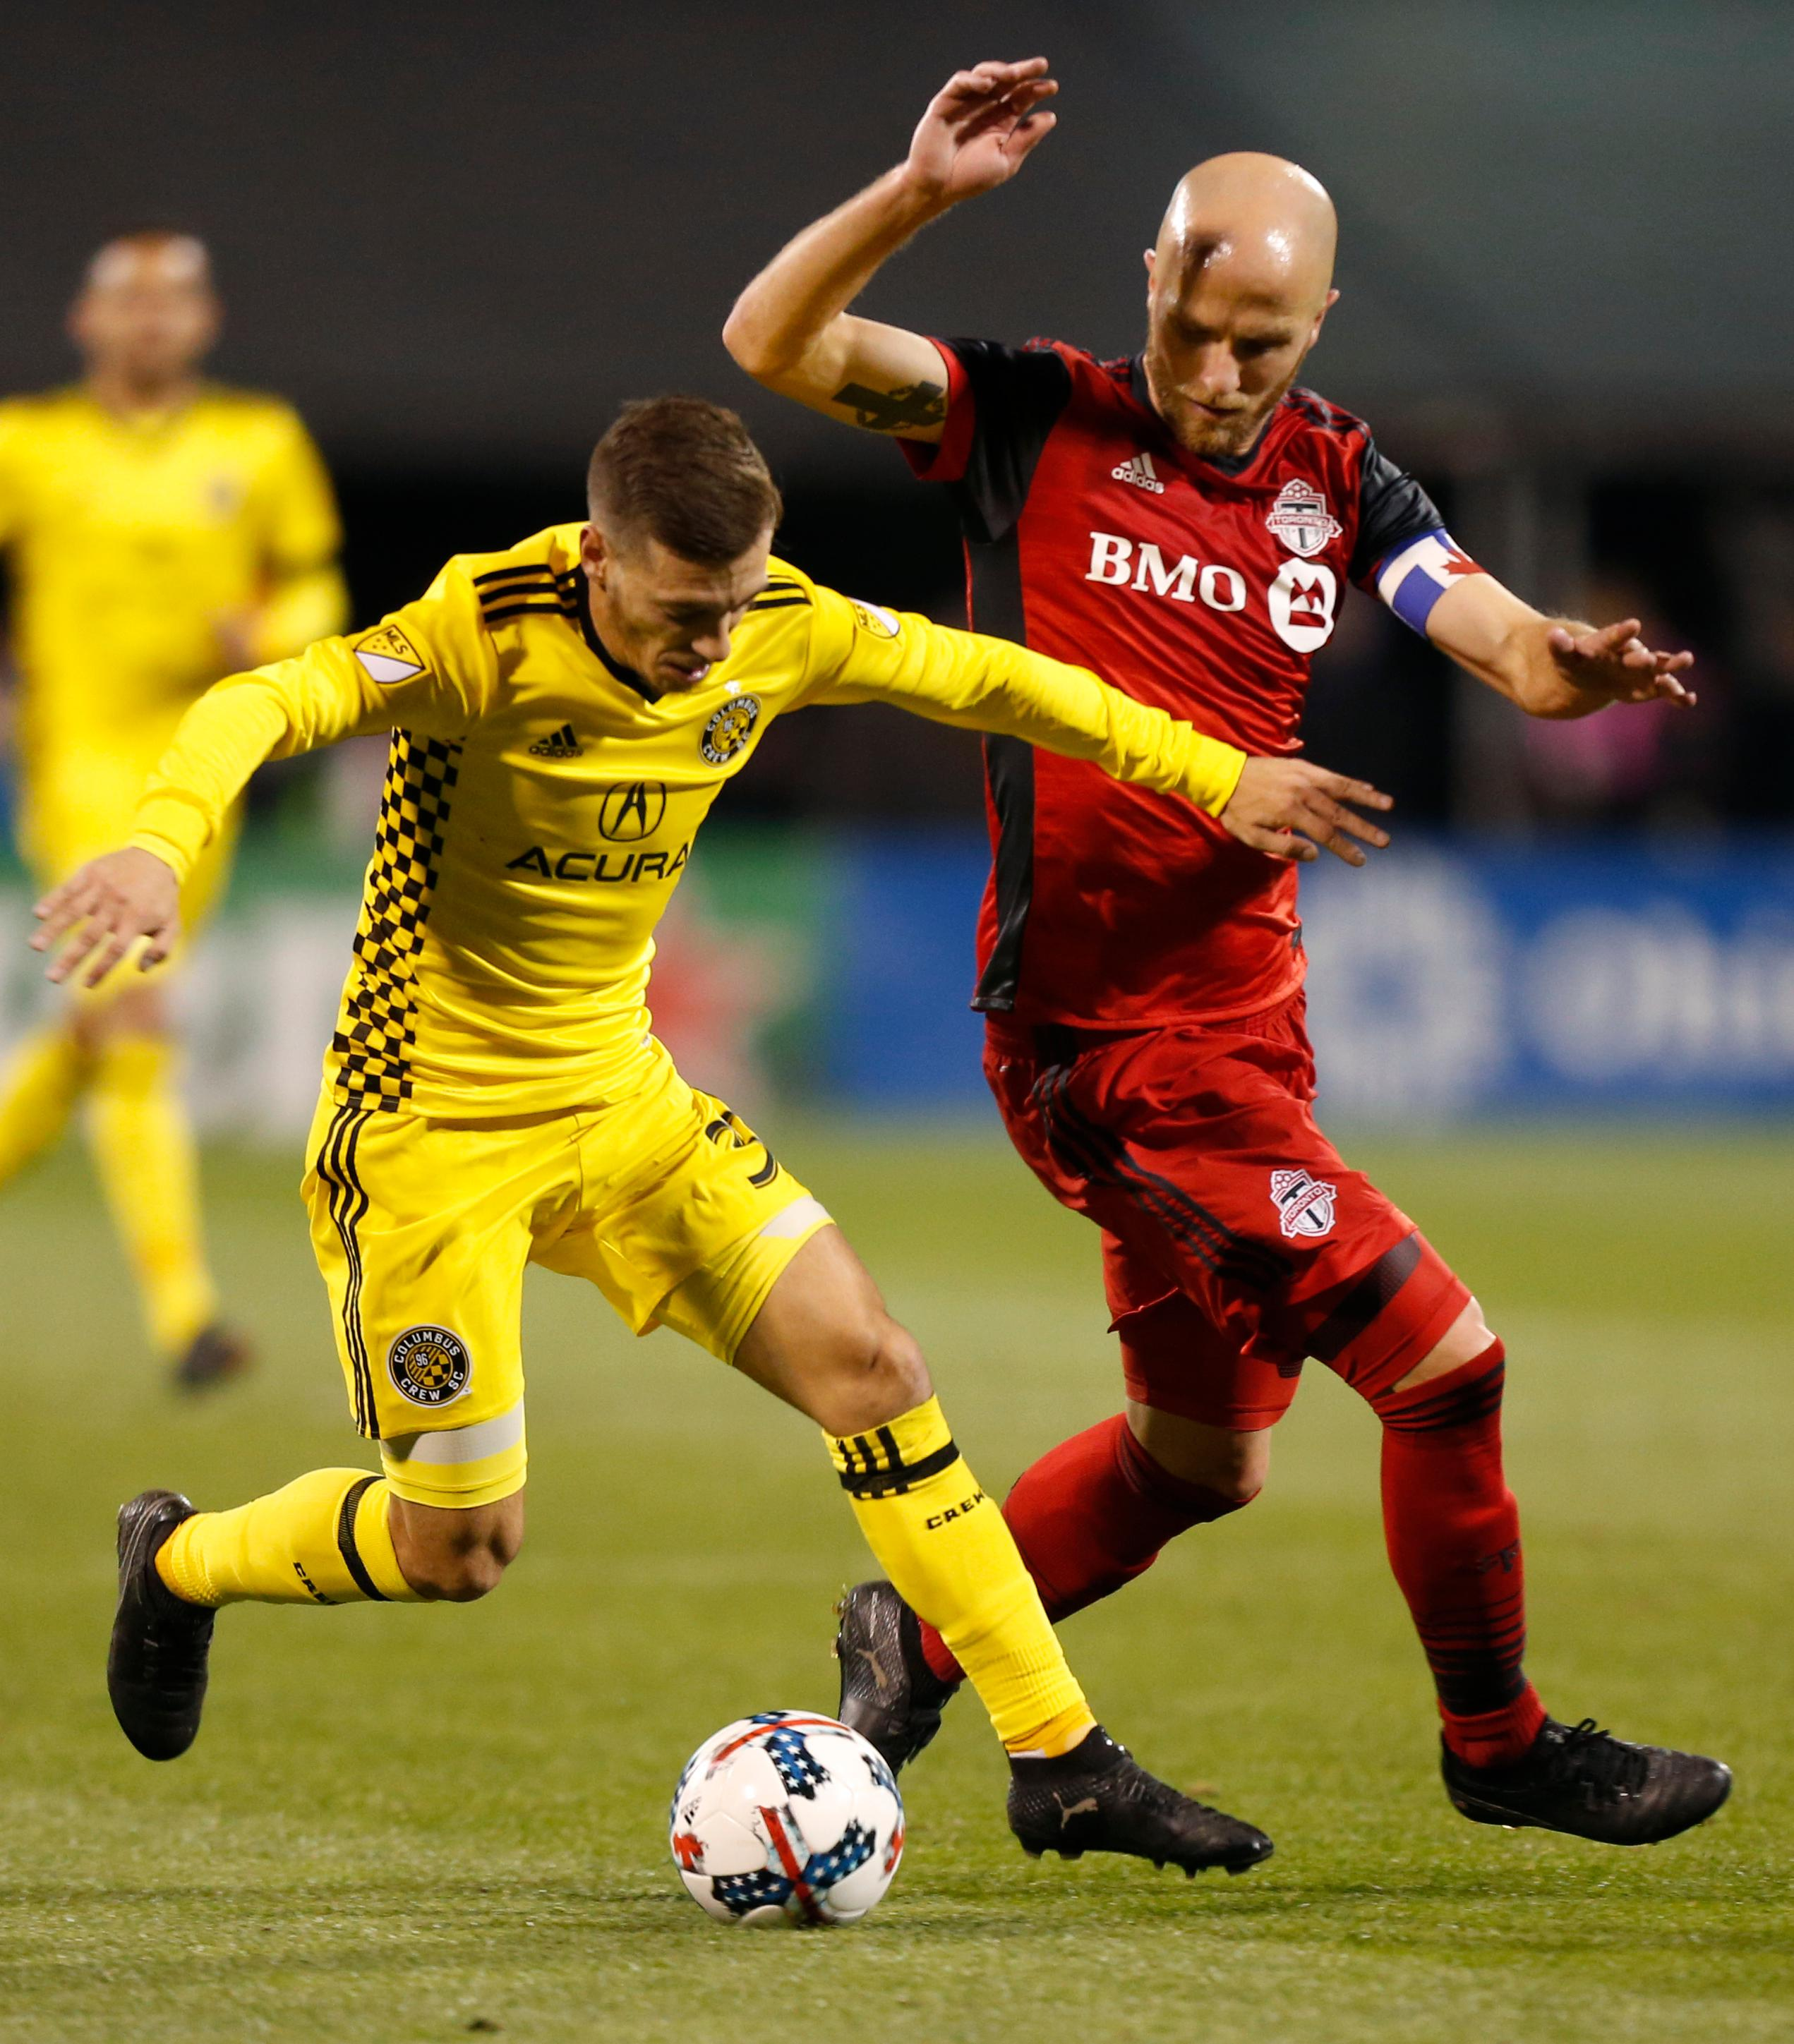 Columbus Crew's Pedro Santos, left, keeps the ball away from Toronto FC's Michael Bradley during the first half of an MLS Eastern Conference championship soccer match Tuesday, Nov. 21, 2017, in Columbus, Ohio. (AP Photo/Jay LaPrete)